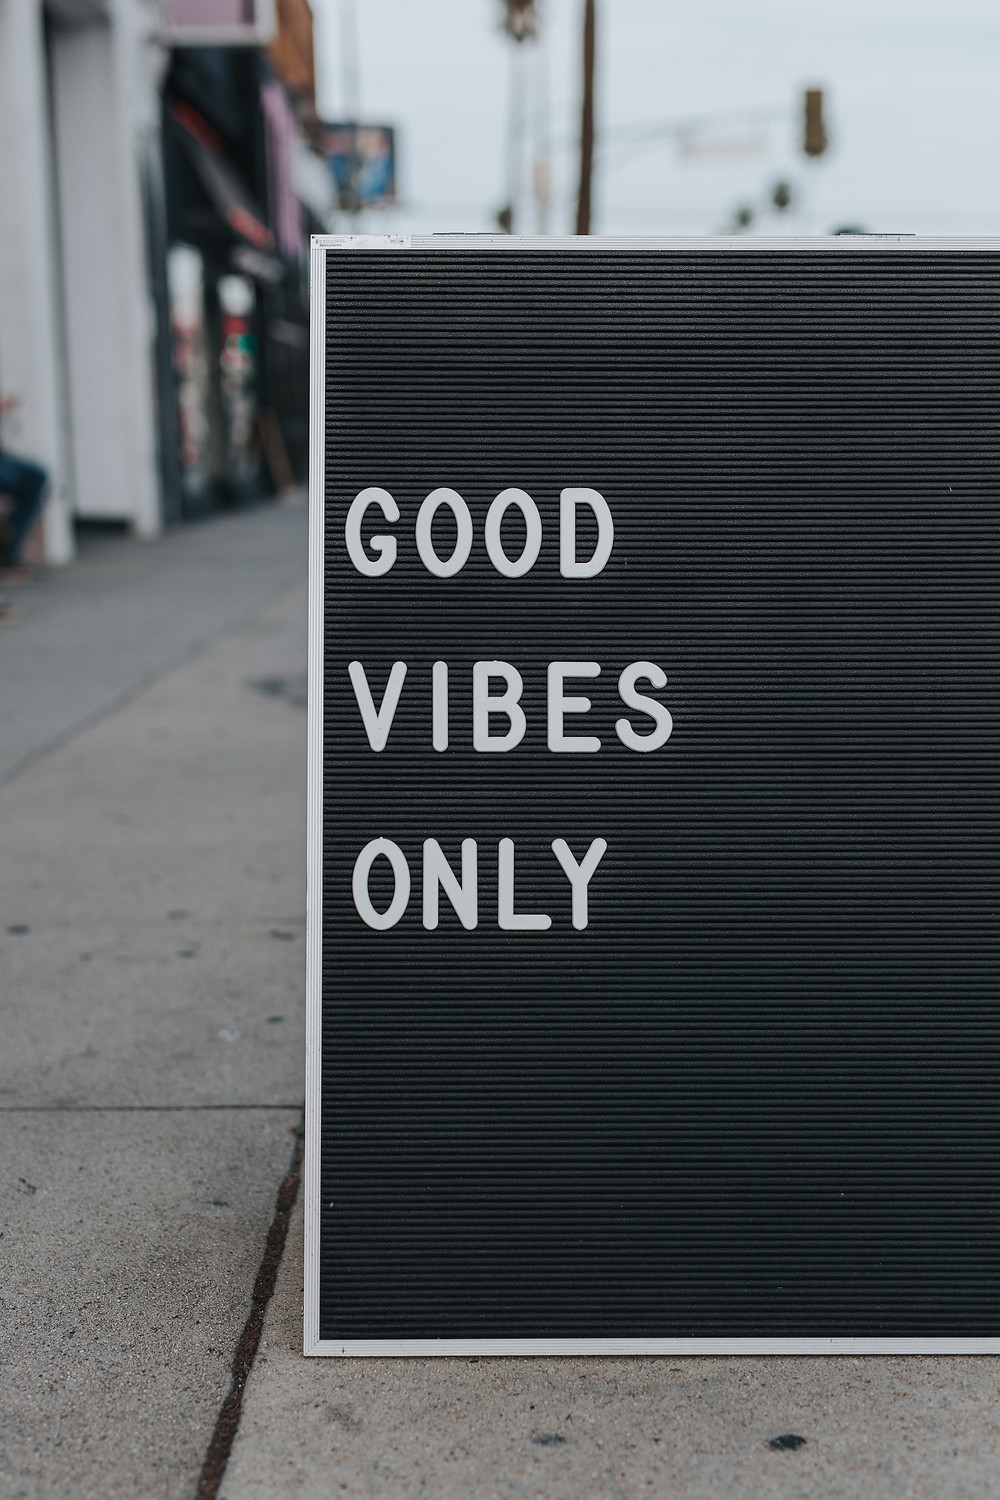 good vibes only.